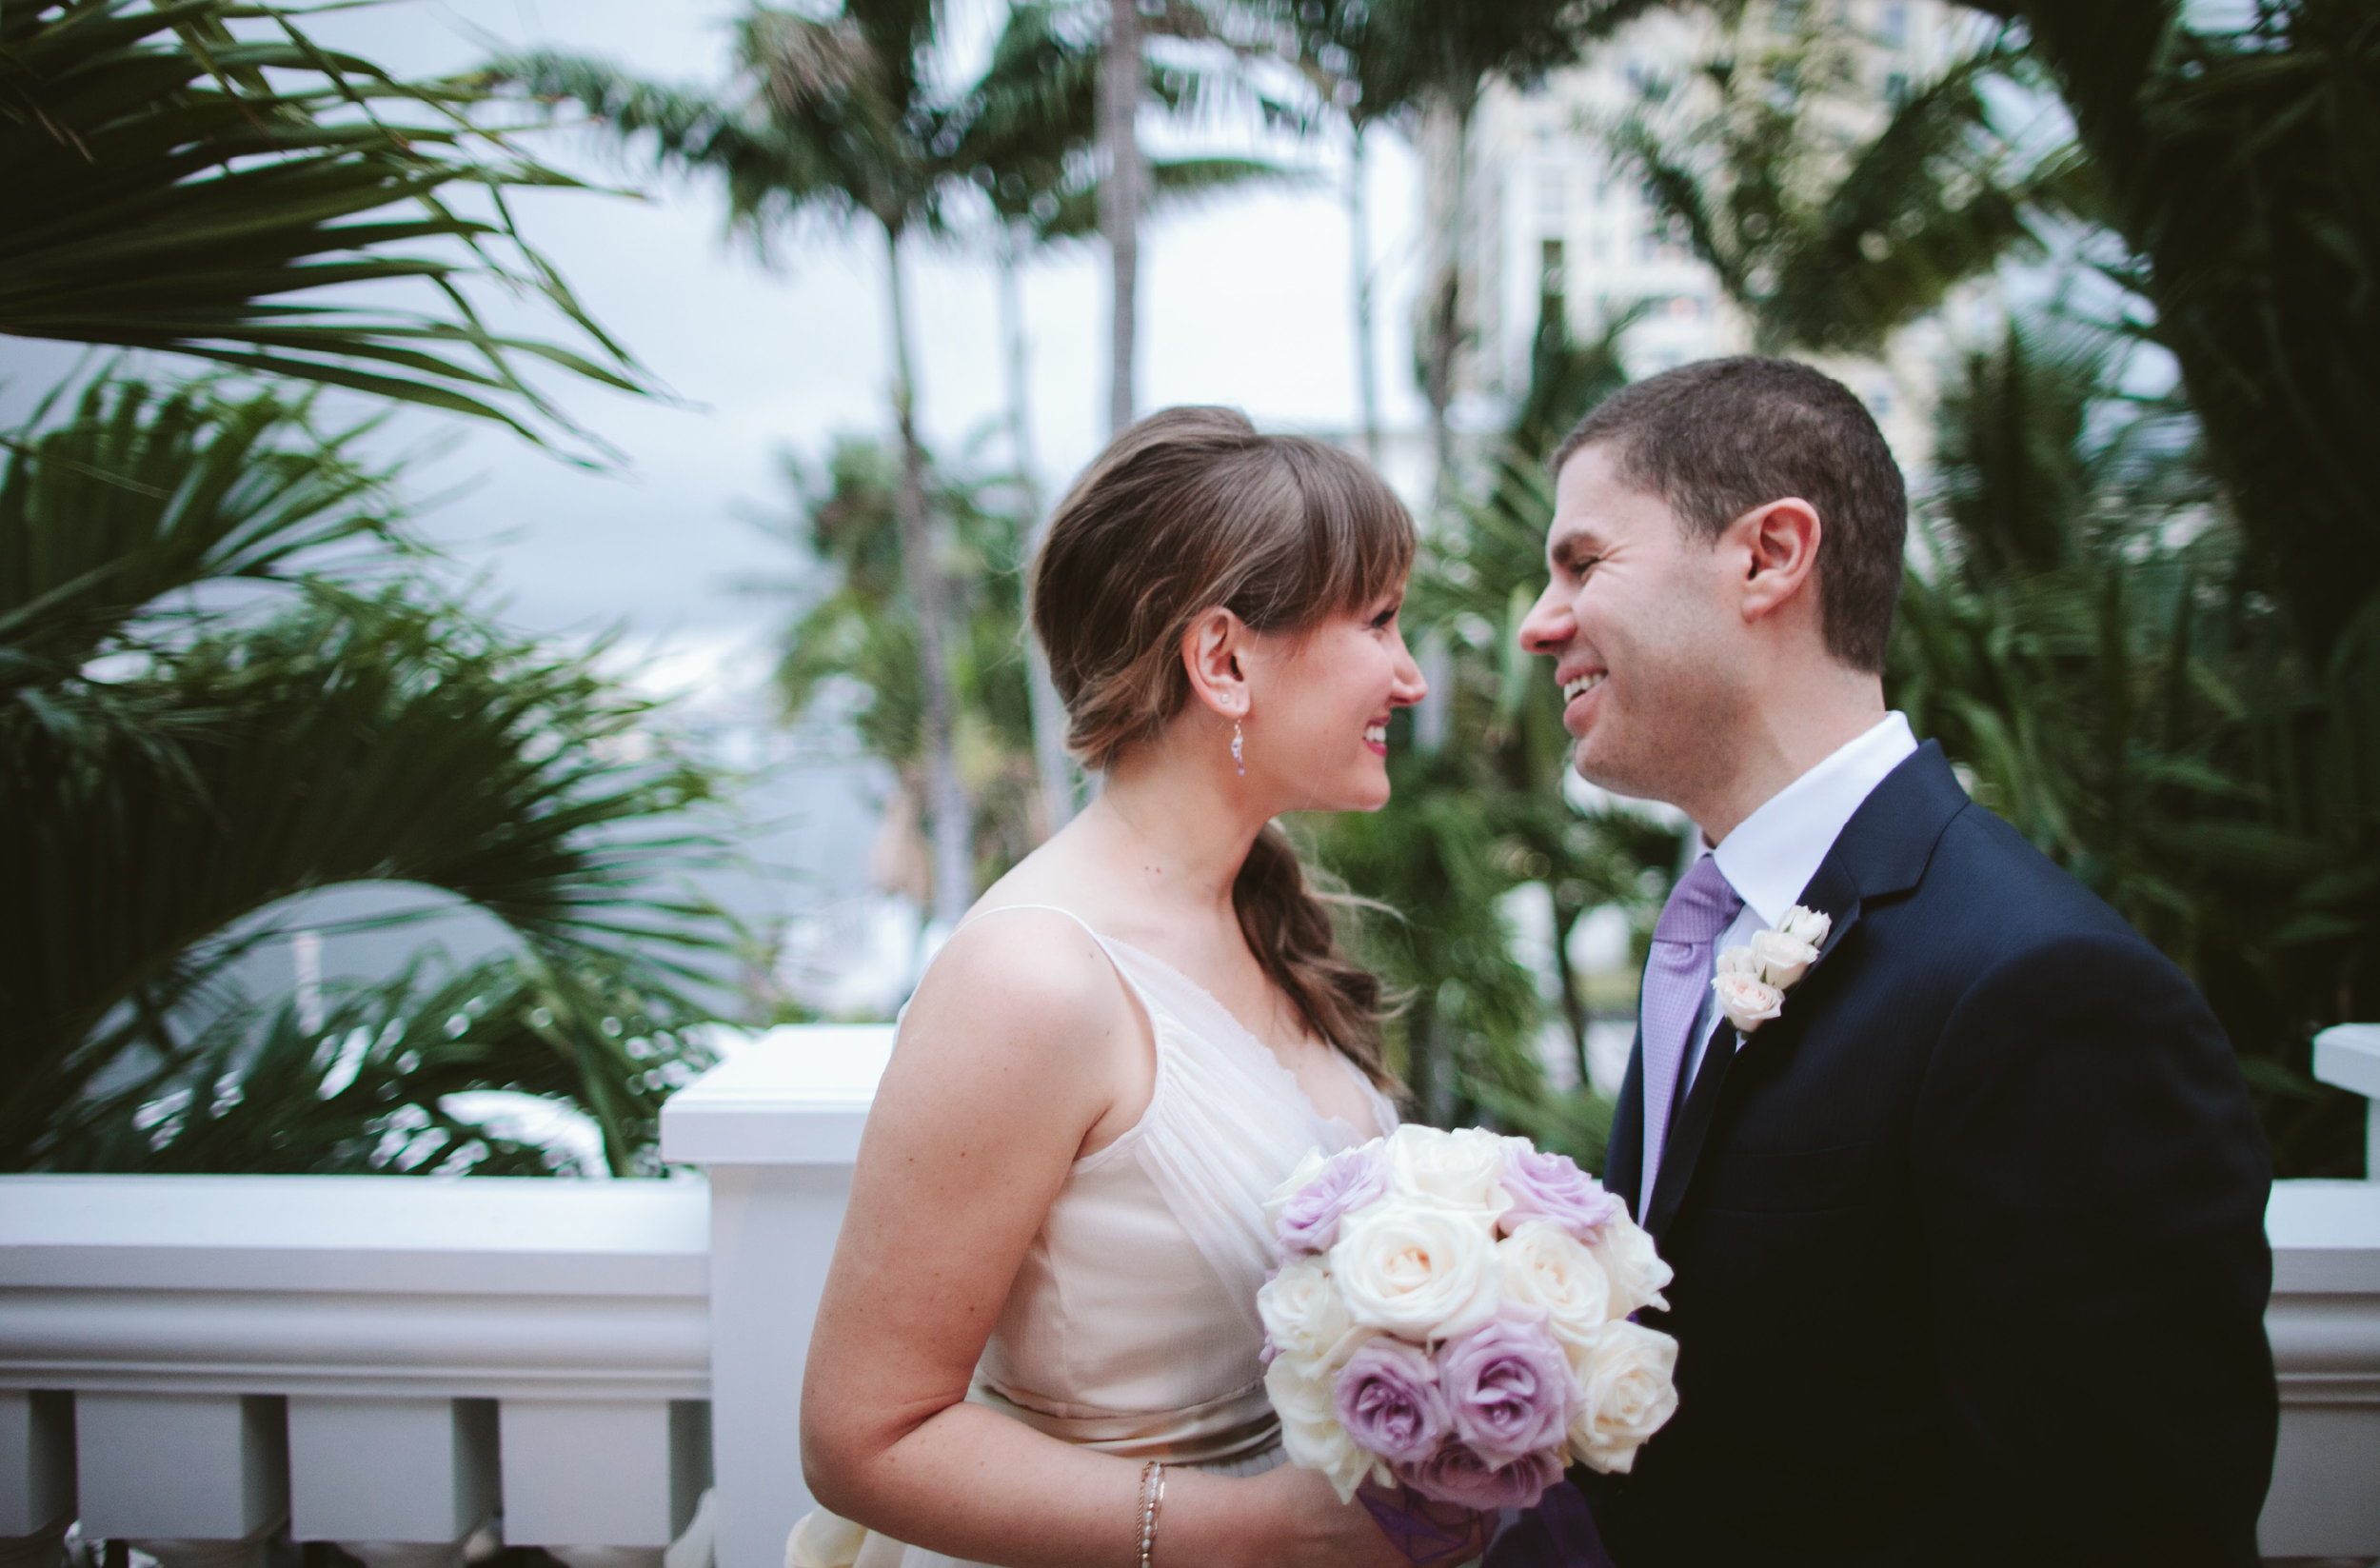 Laura + Vitaly's Intimate Ft Lauderdale Wedding at The Pillars Hotel12.jpg